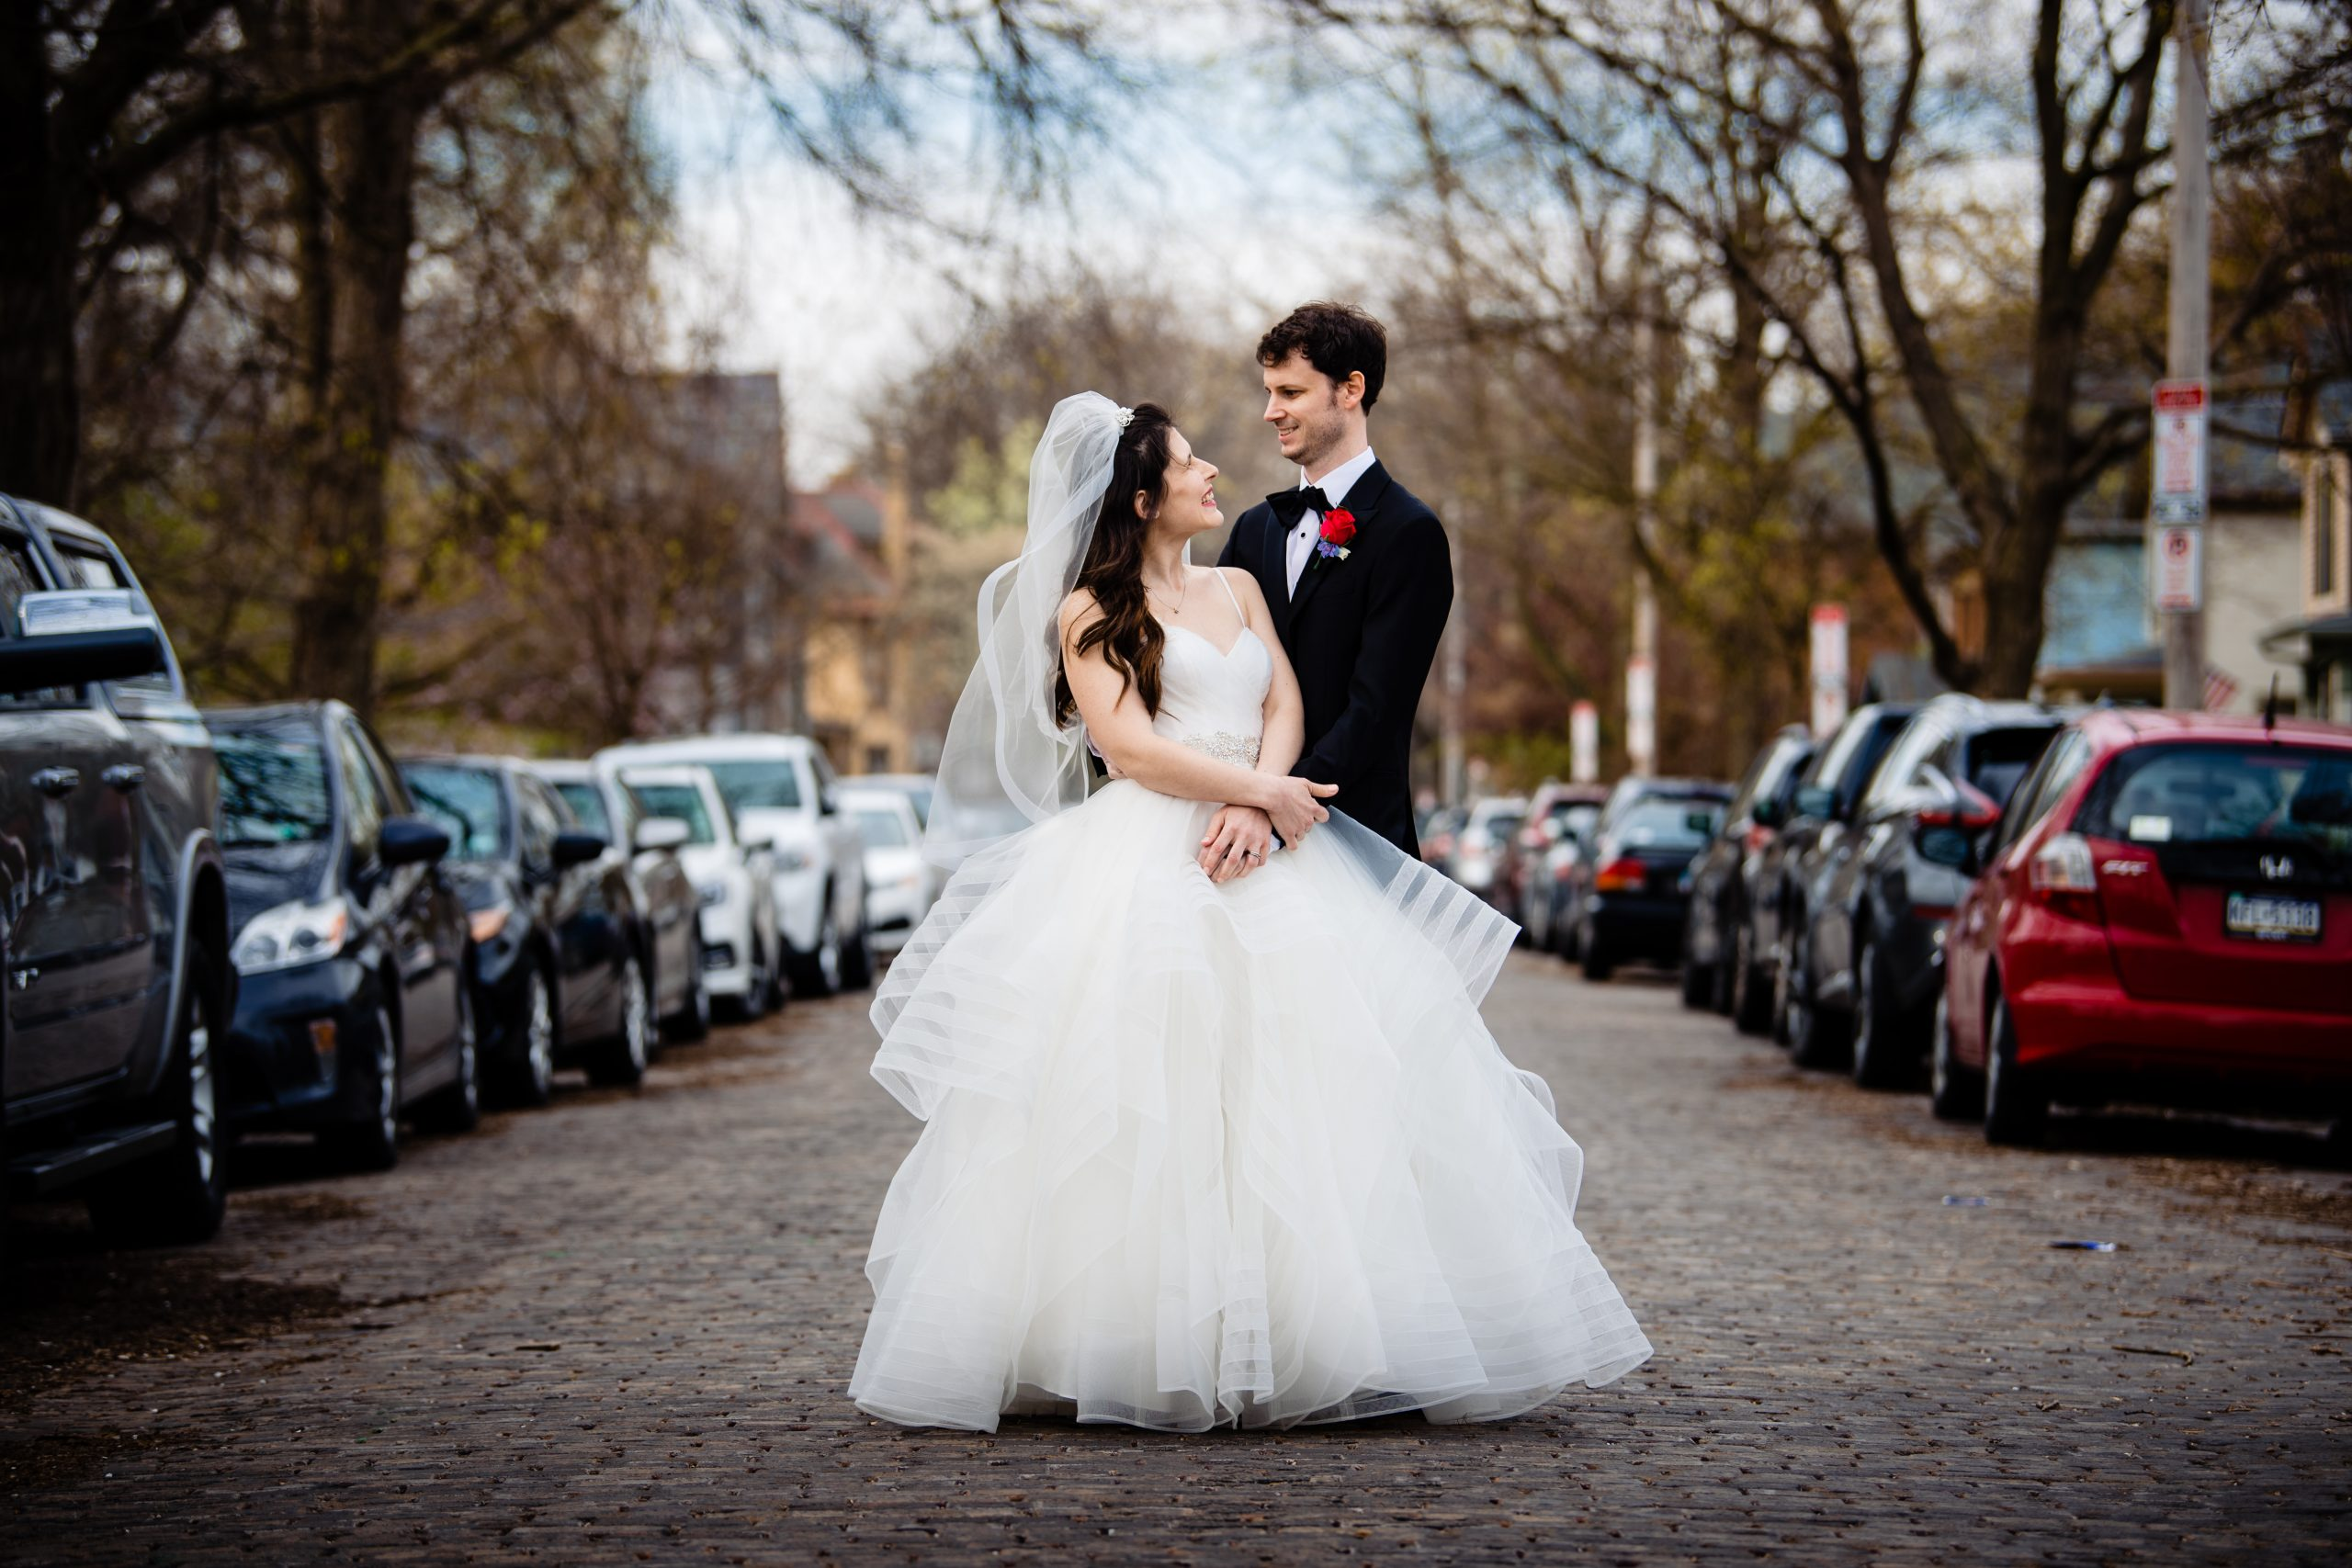 A bride and groom standing in the street on their wedding day